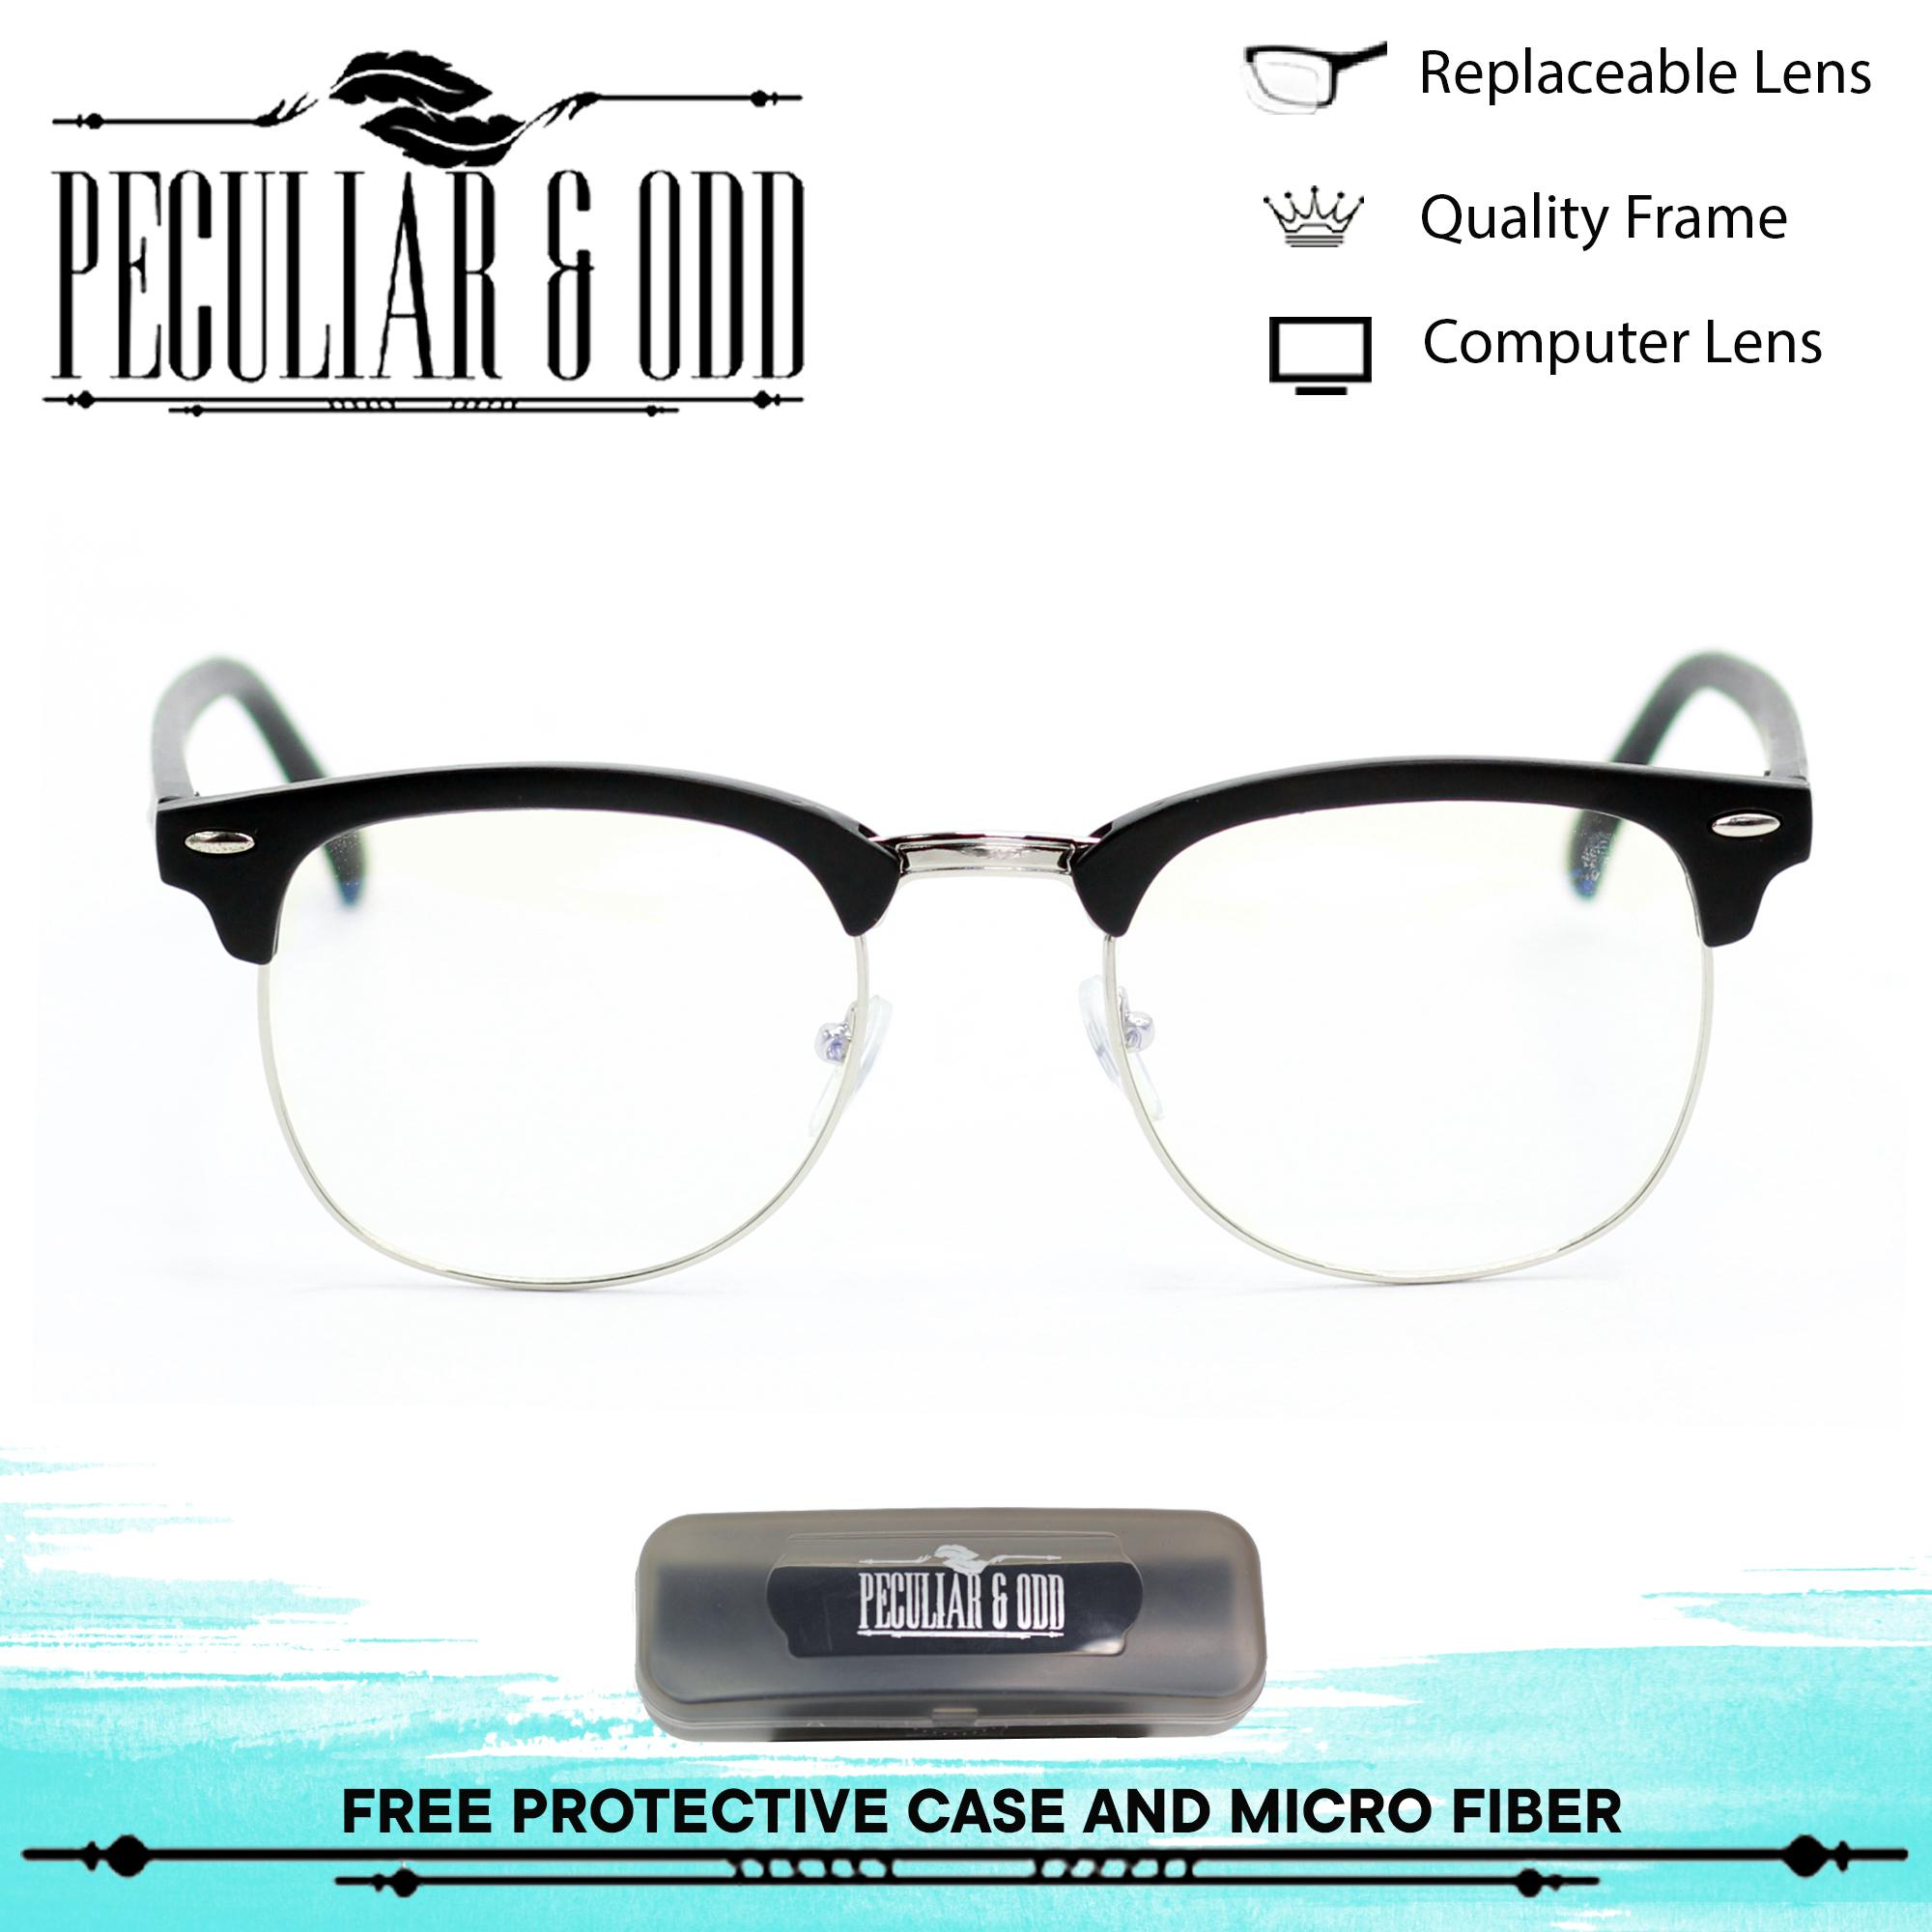 df07a3ae20 Glasses for sale - Eyewear online brands